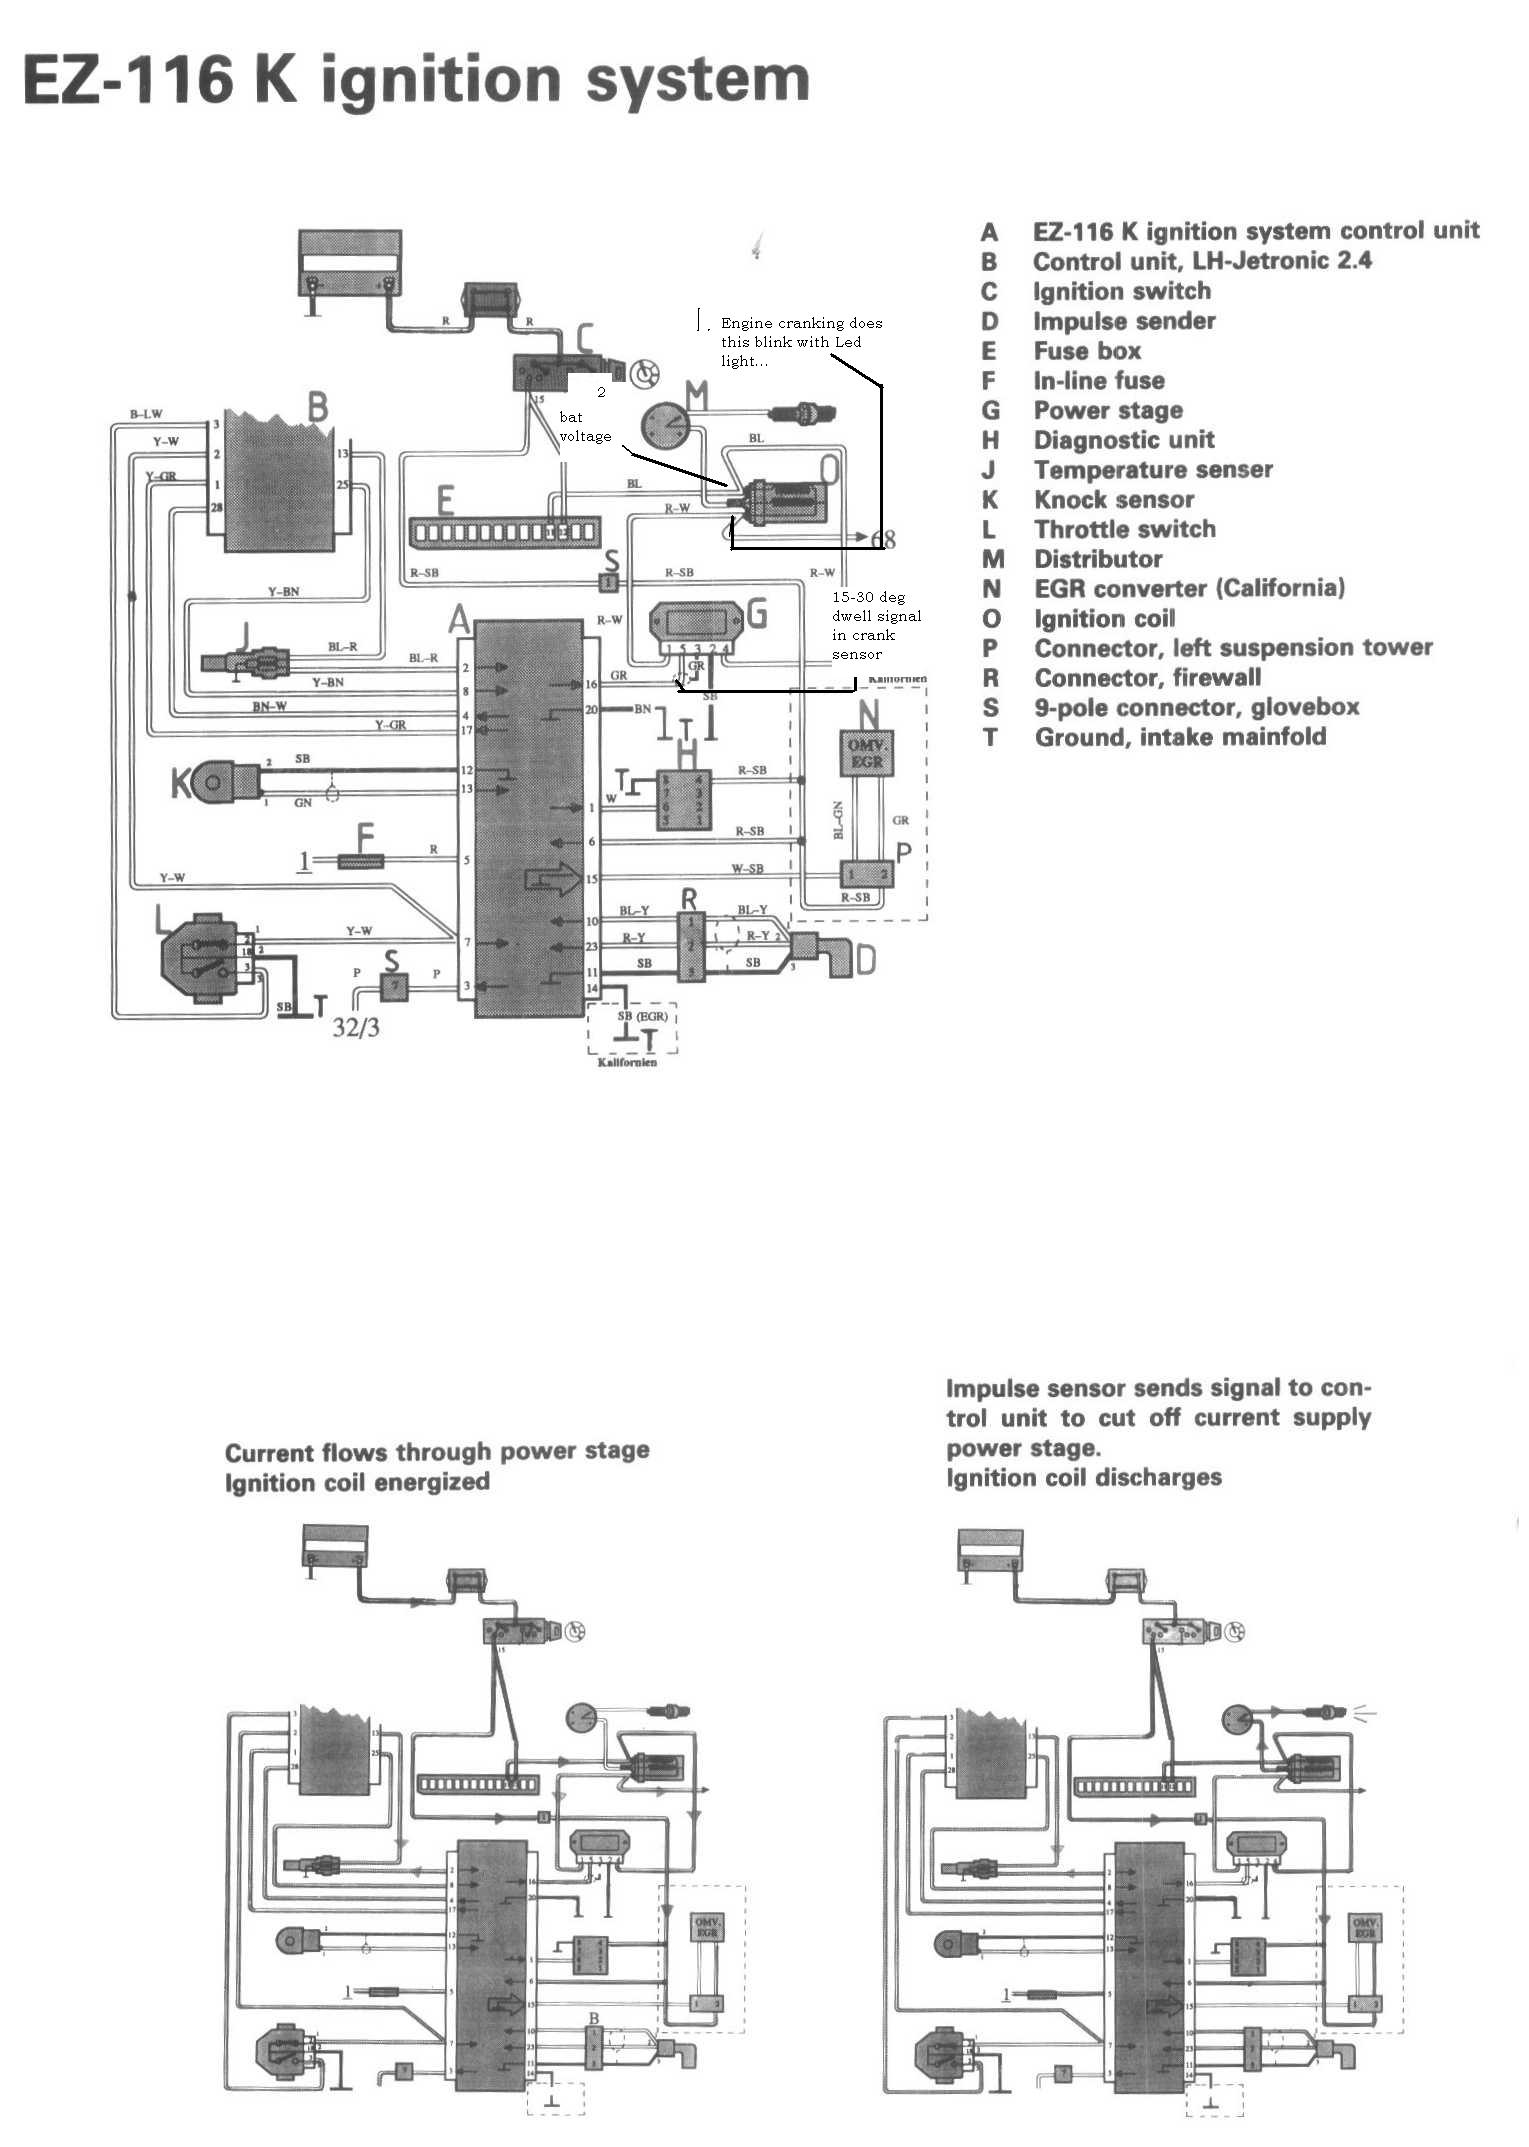 1988 Volvo 240 No Spark Hall Effect Sensor Wiring Diagram Http Wwwjustanswercom Graphic